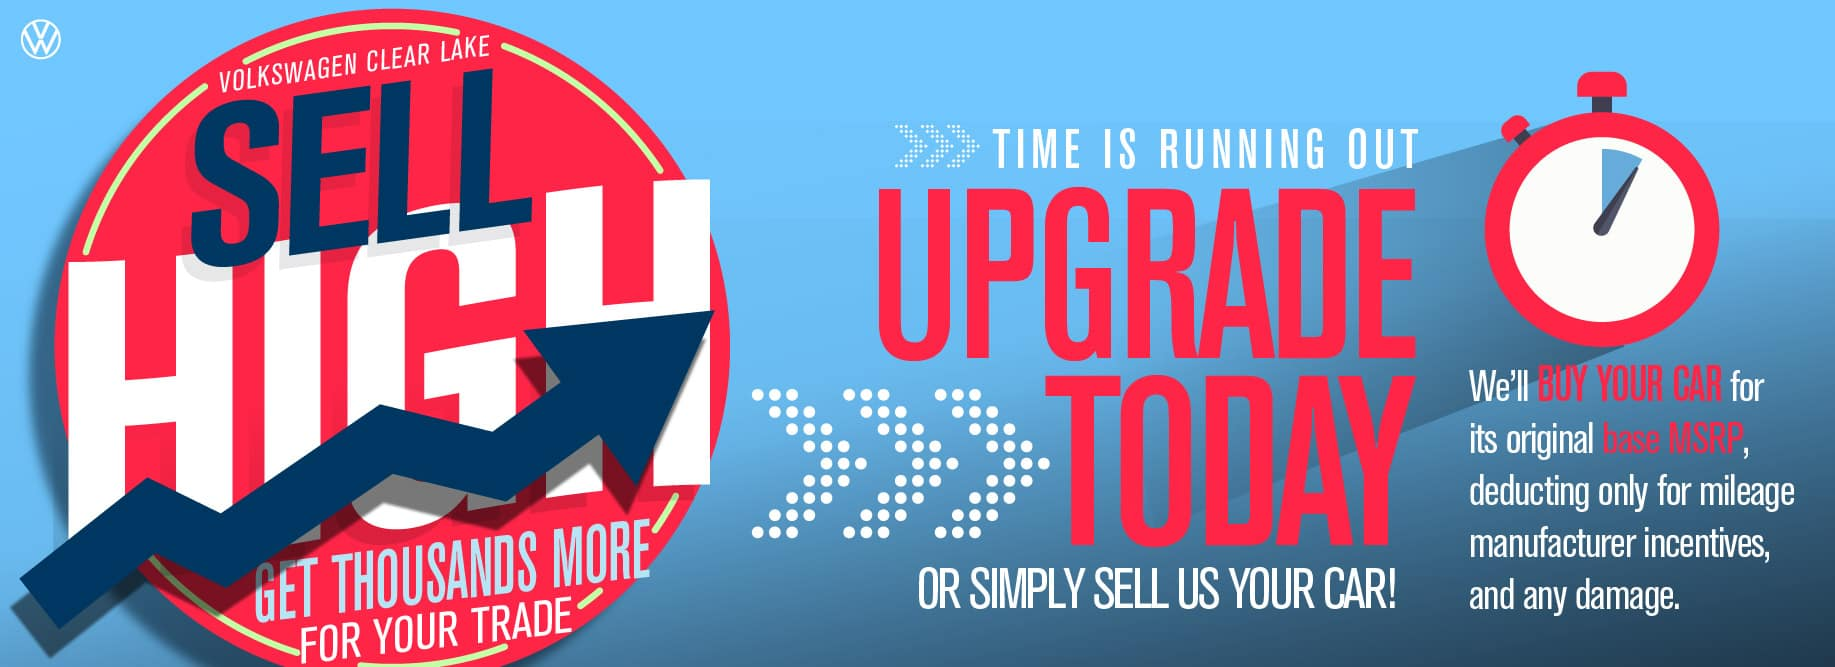 Your trade is worth more than ever before - plus get as low as 0% APR on new and used at VW Clear Lake!